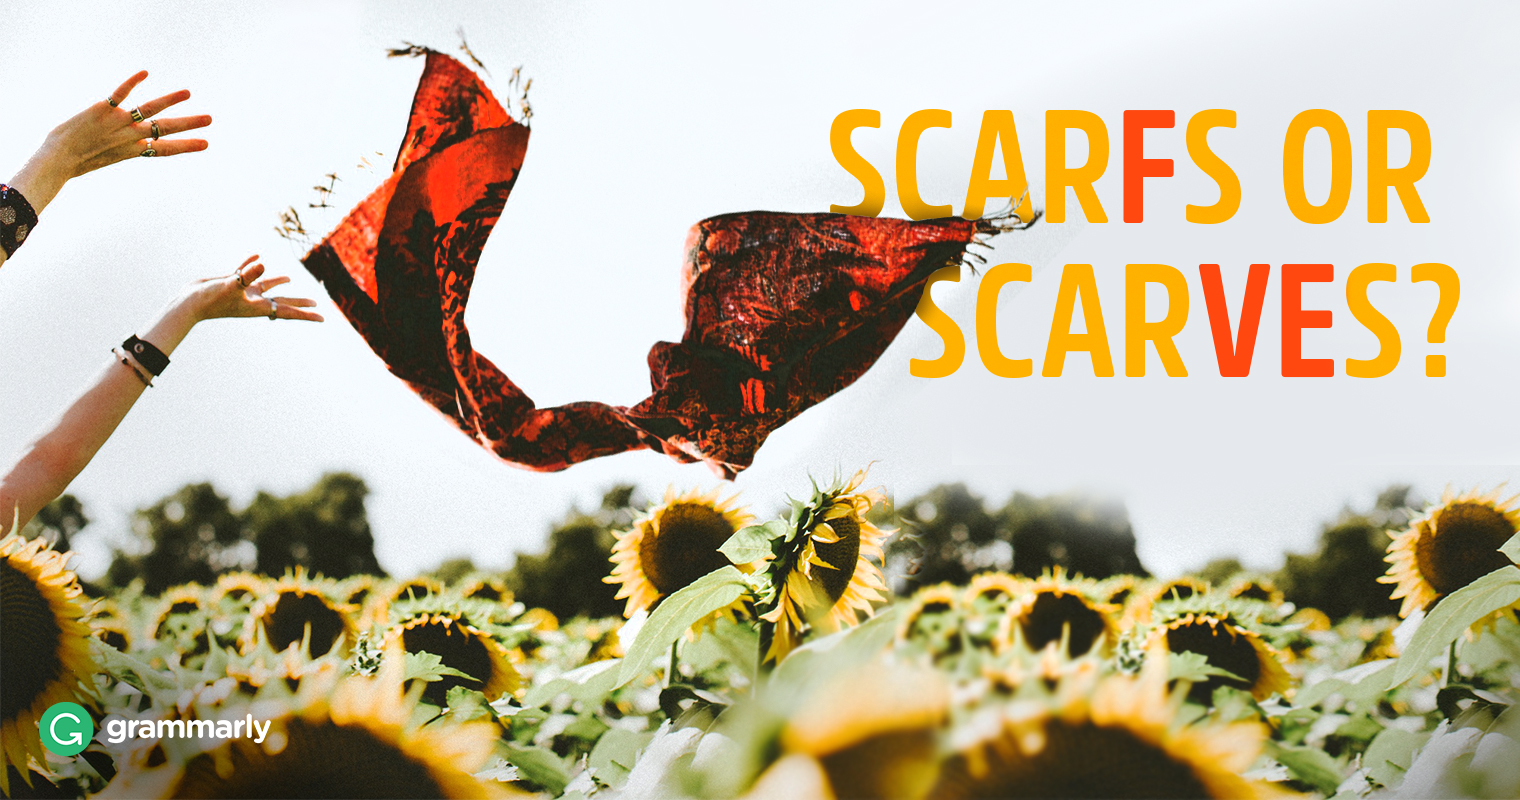 Scarfs or Scarves—What's the Plural of Scarf? image